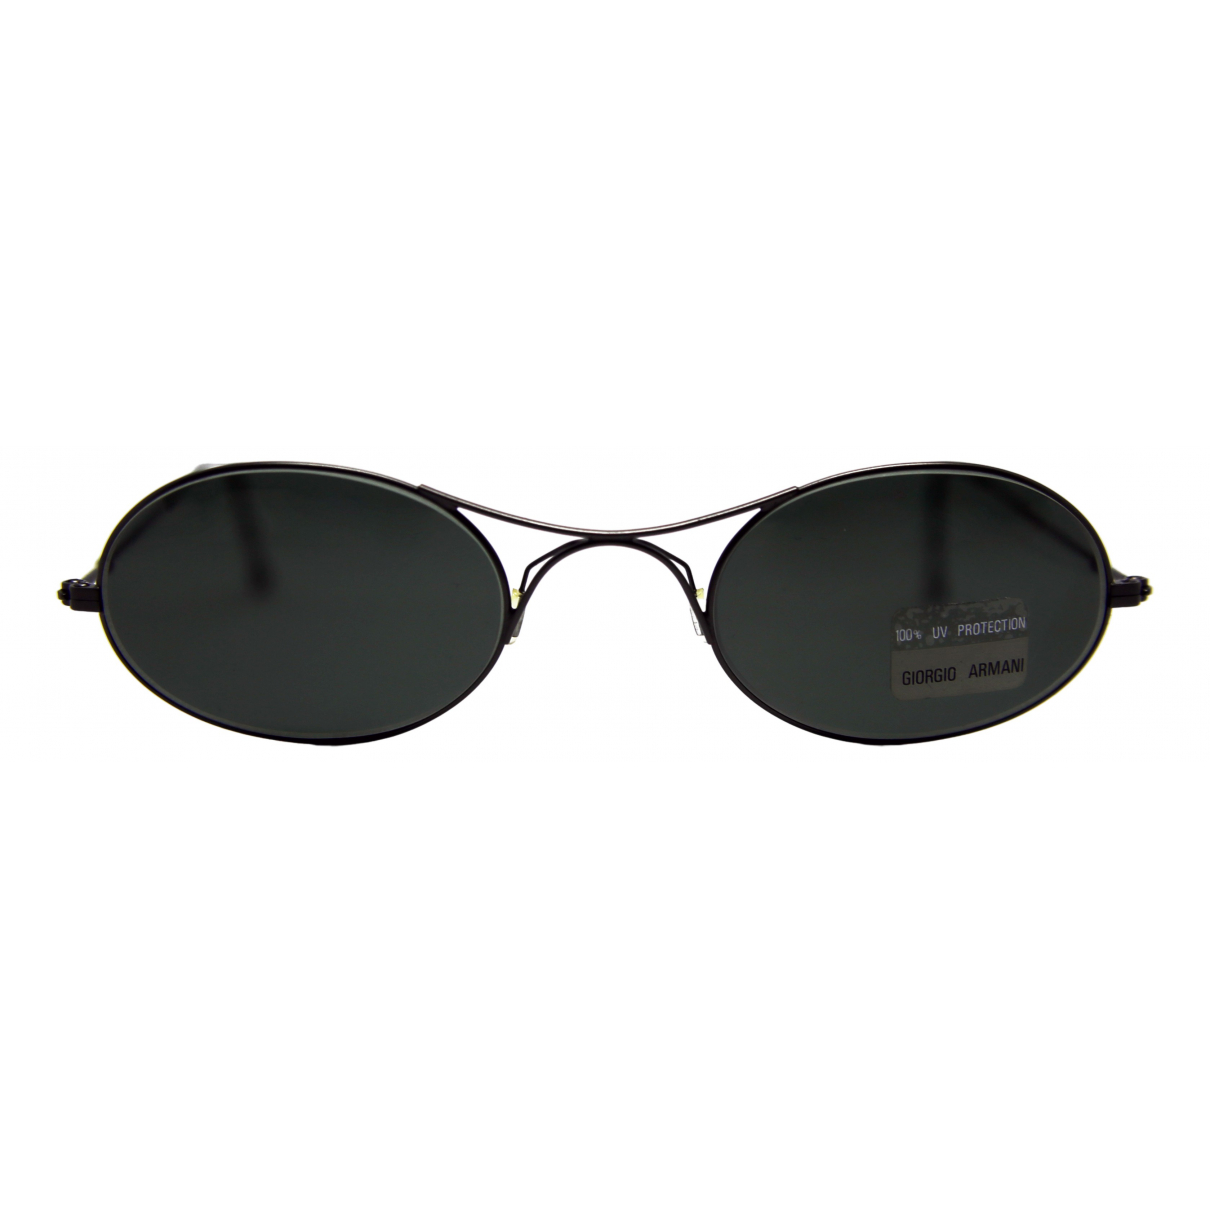 Giorgio Armani N Black Metal Sunglasses for Men N